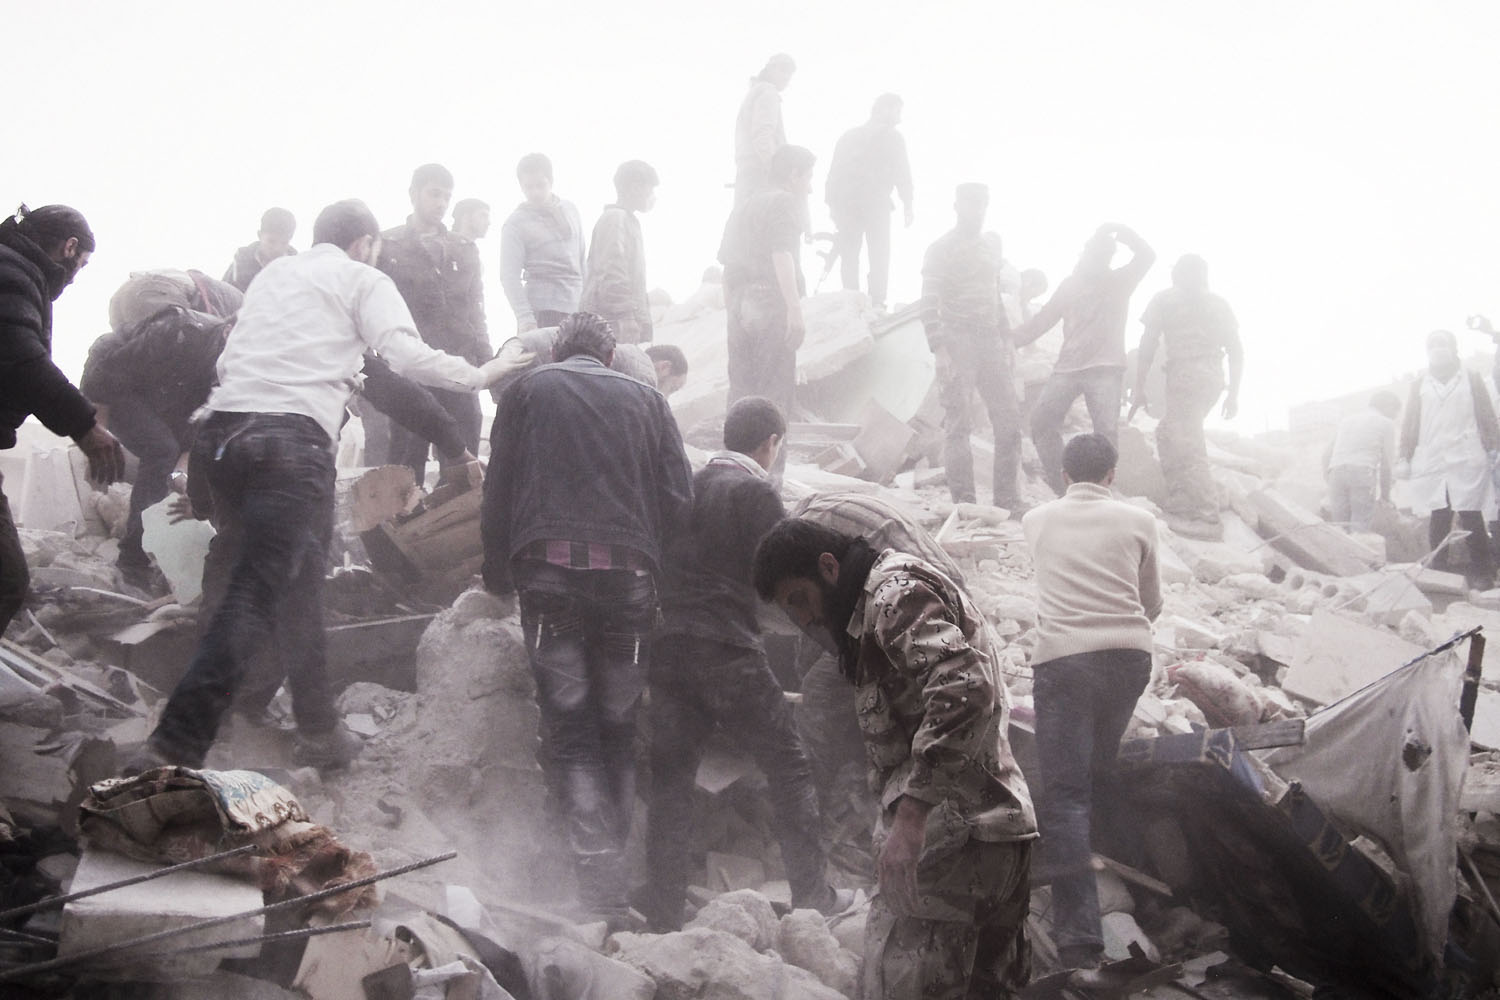 March 19, 2013. Searching for survivors among the rubble of a residential building targeted by a regime airstrike in the rebel-held Al-Sukri district in Aleppo, Syria.